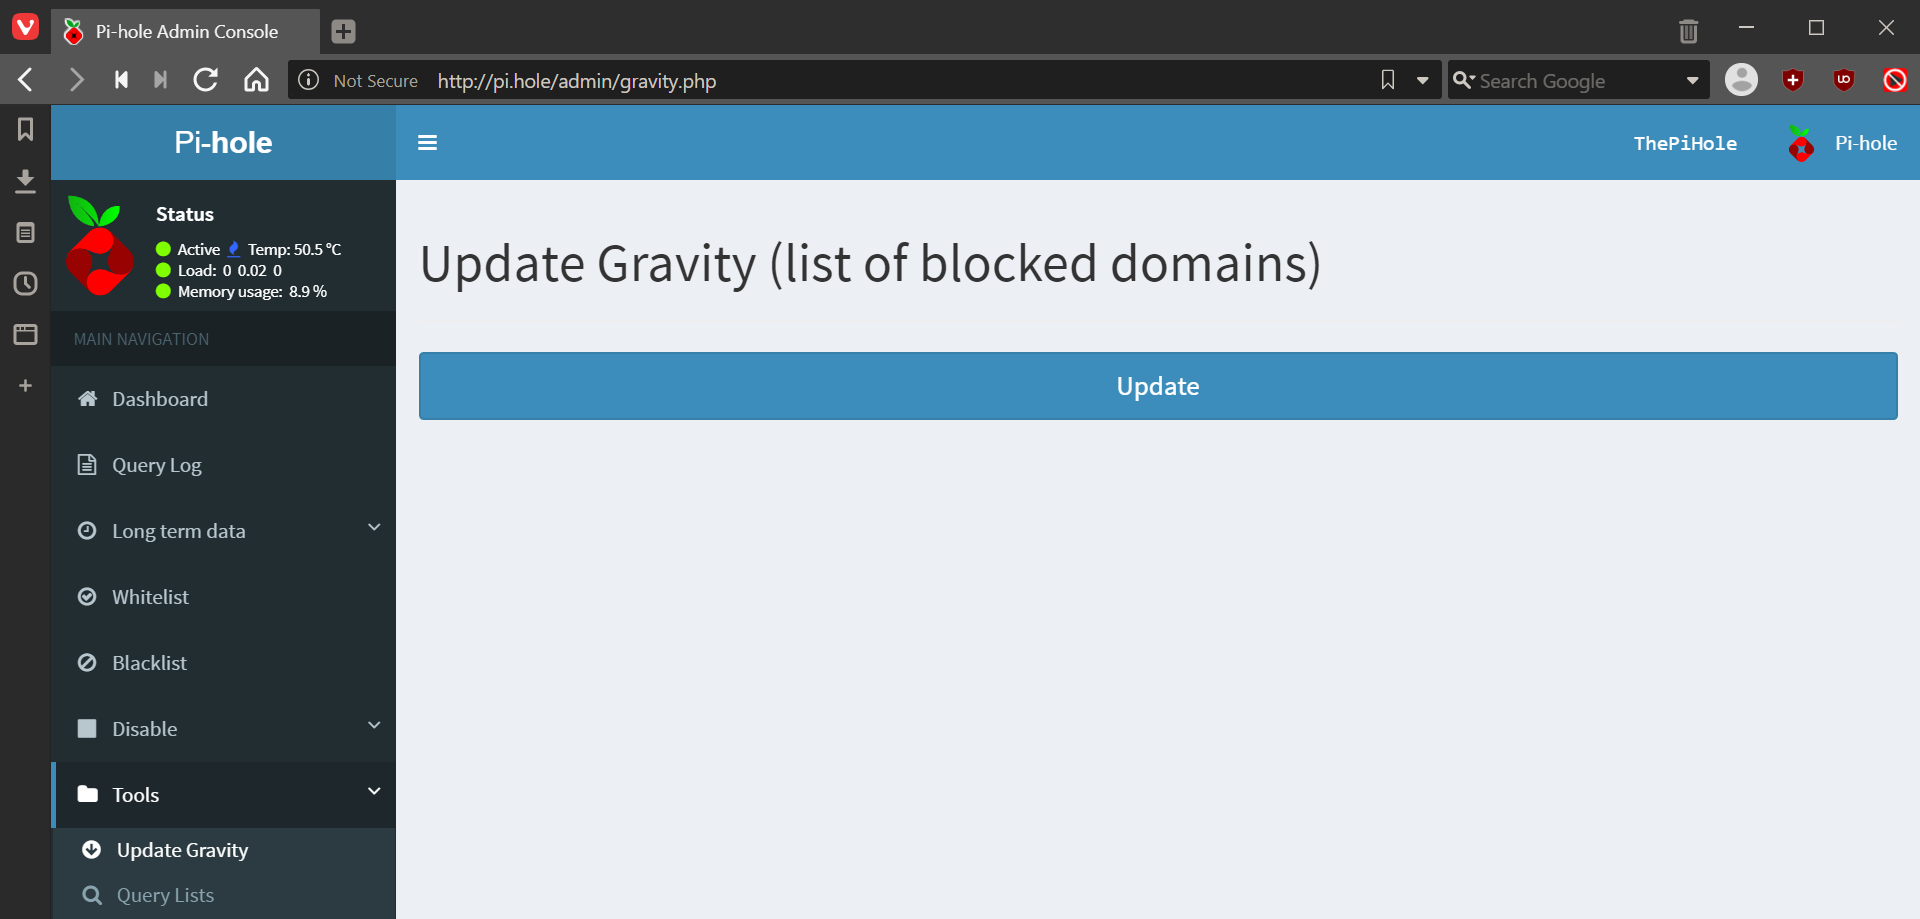 Update Gravity (list of blocked domains)